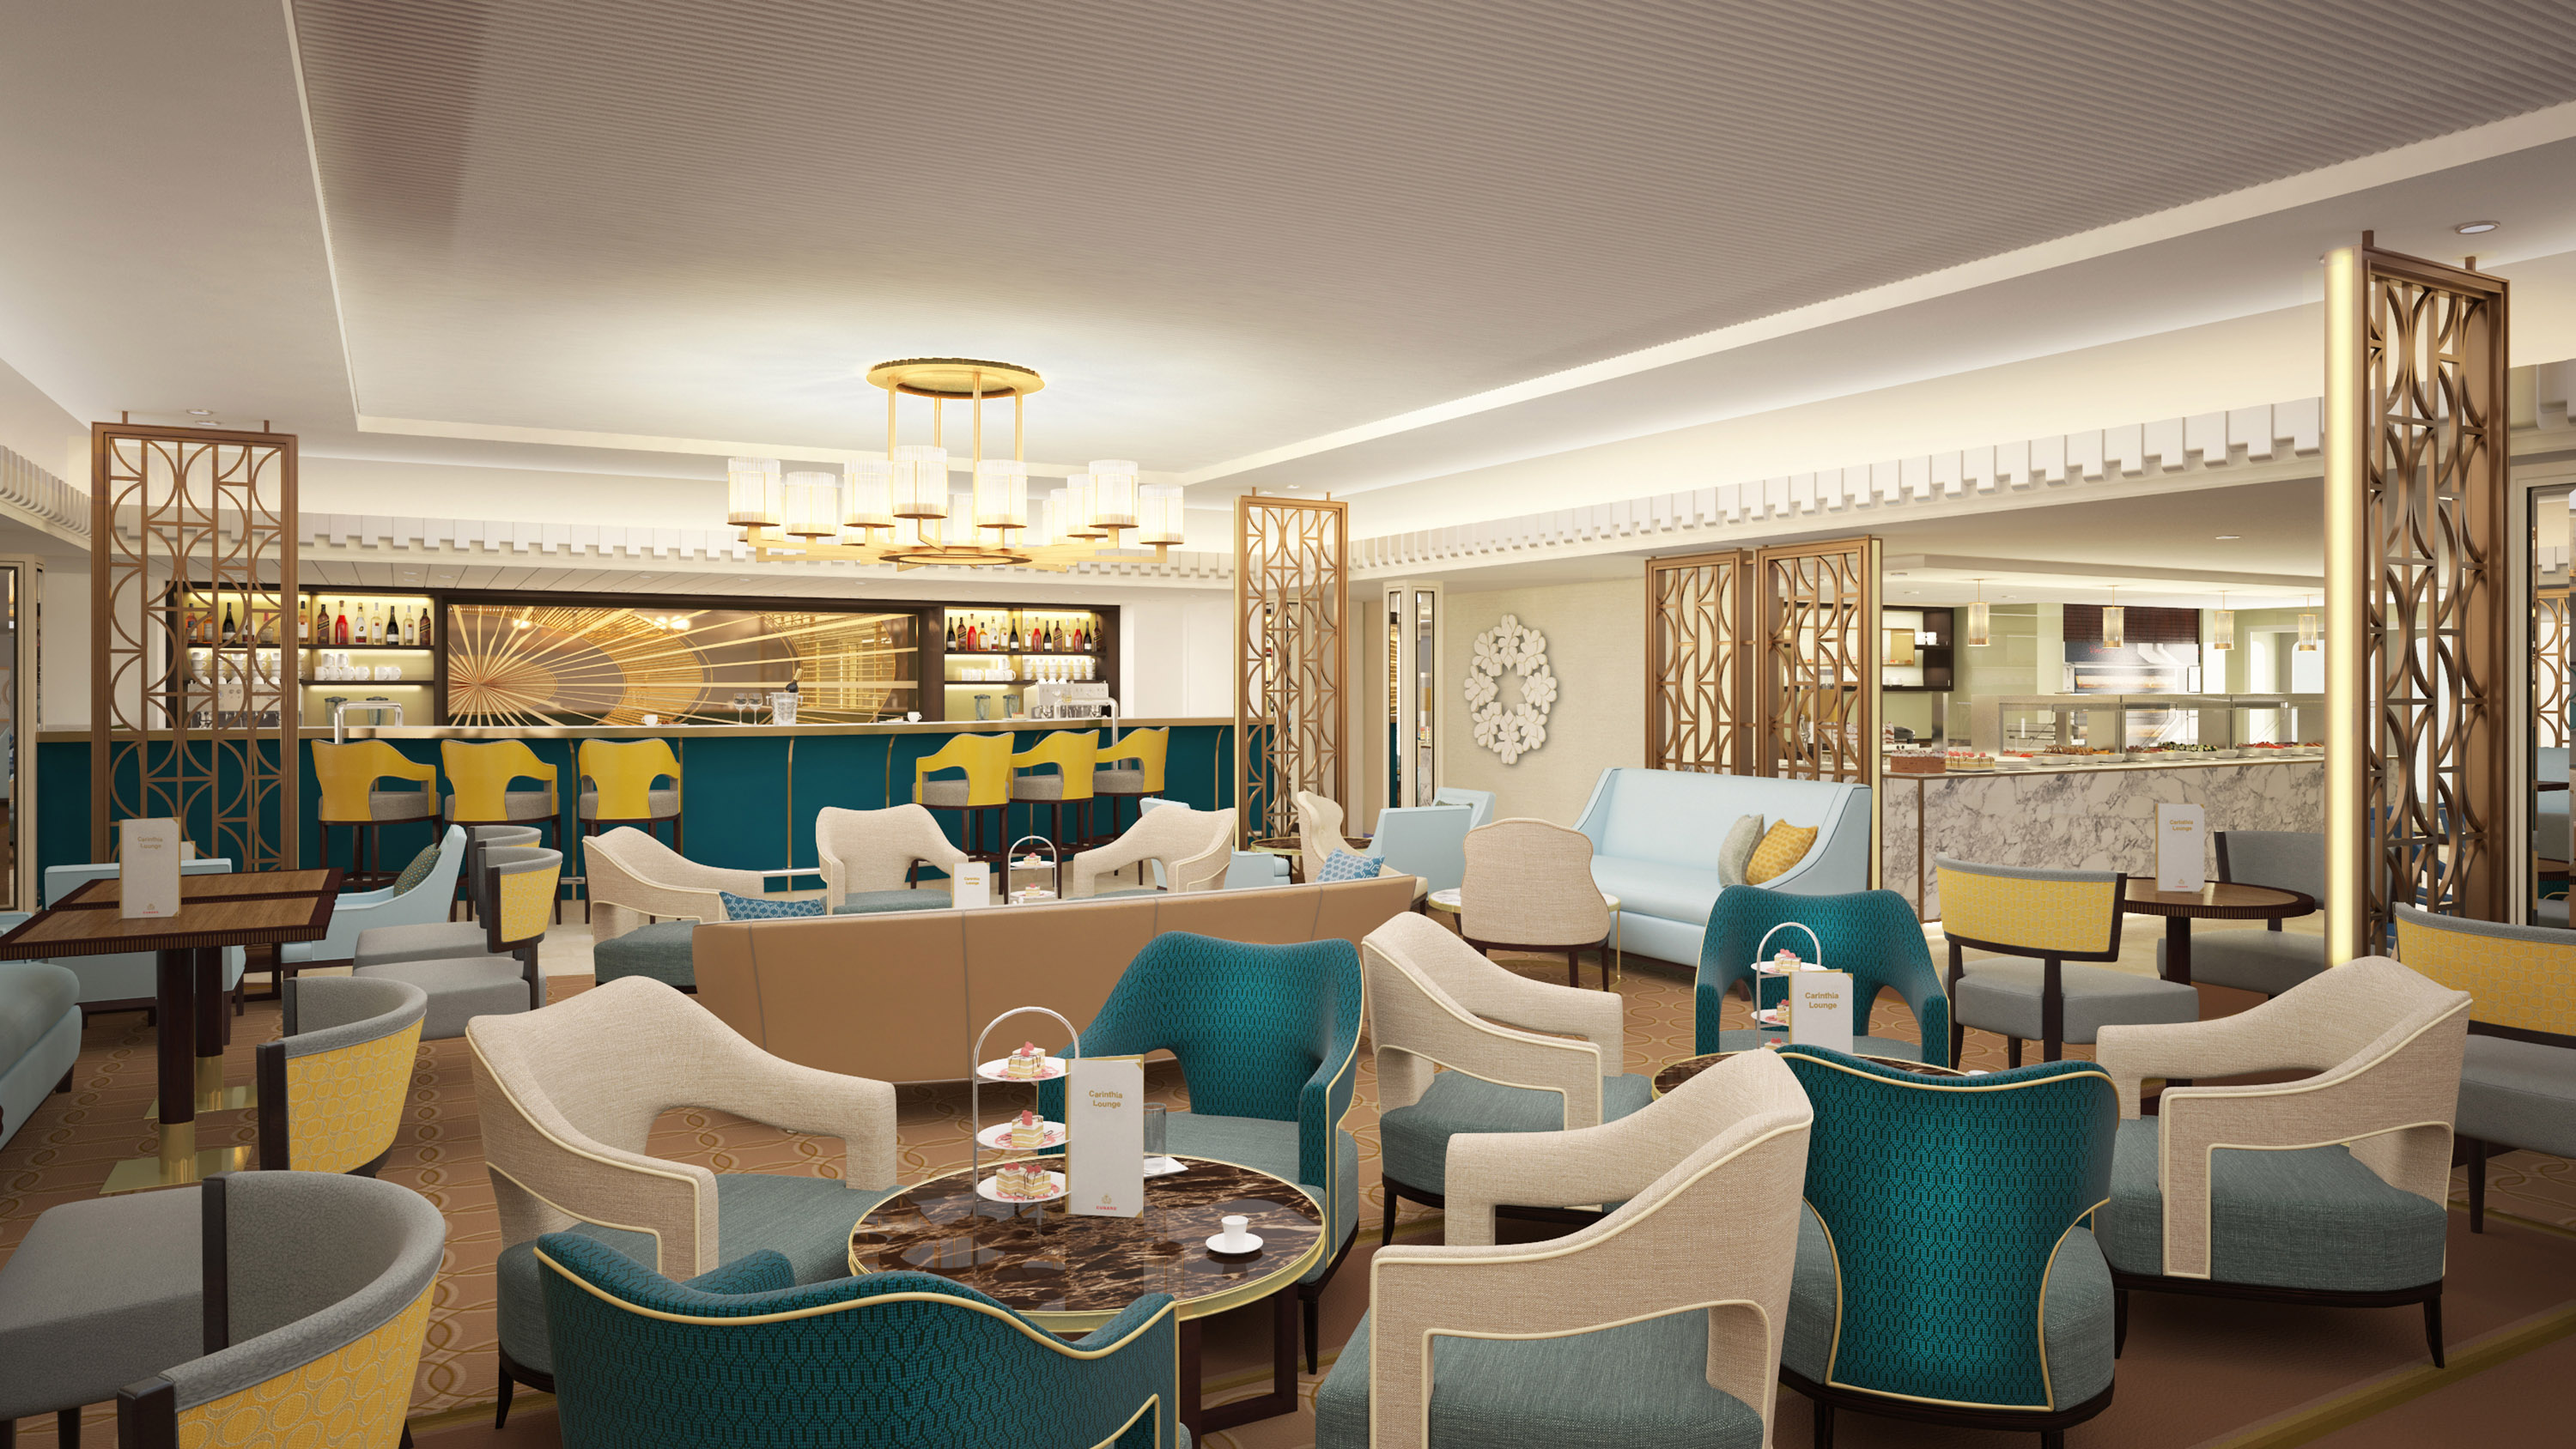 Carinthia Lounge Queen Mary 2 rendering